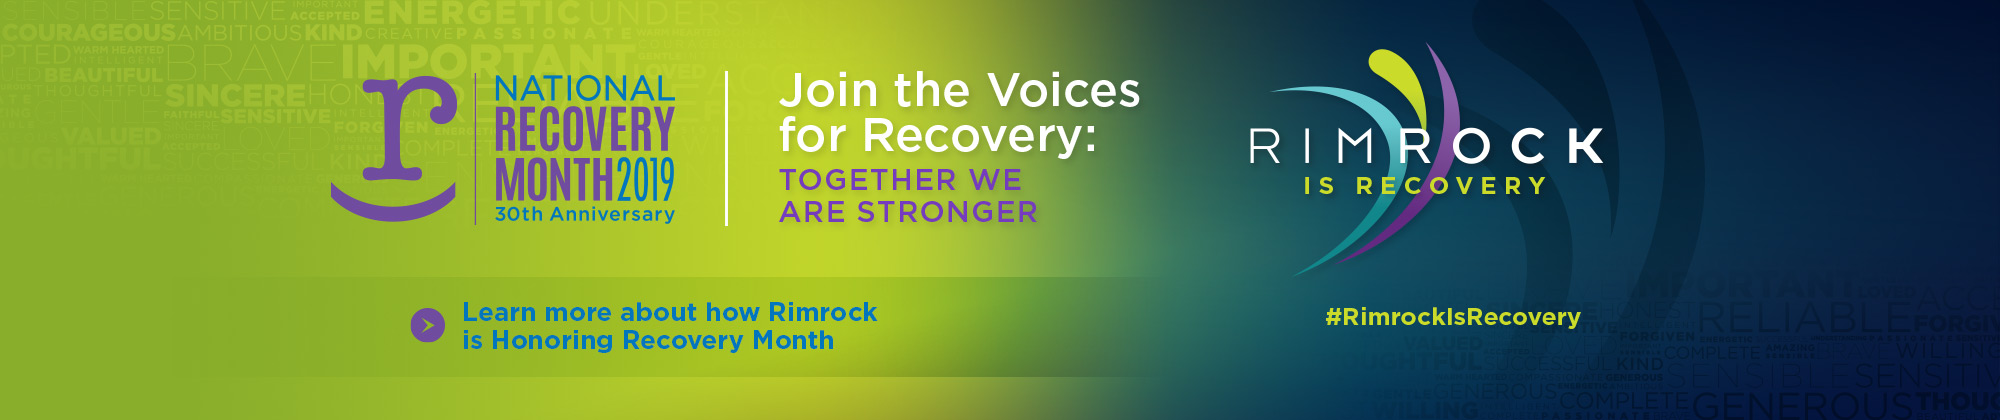 Rimrock - Rimrock is Recovery - Celebrate Recover Month